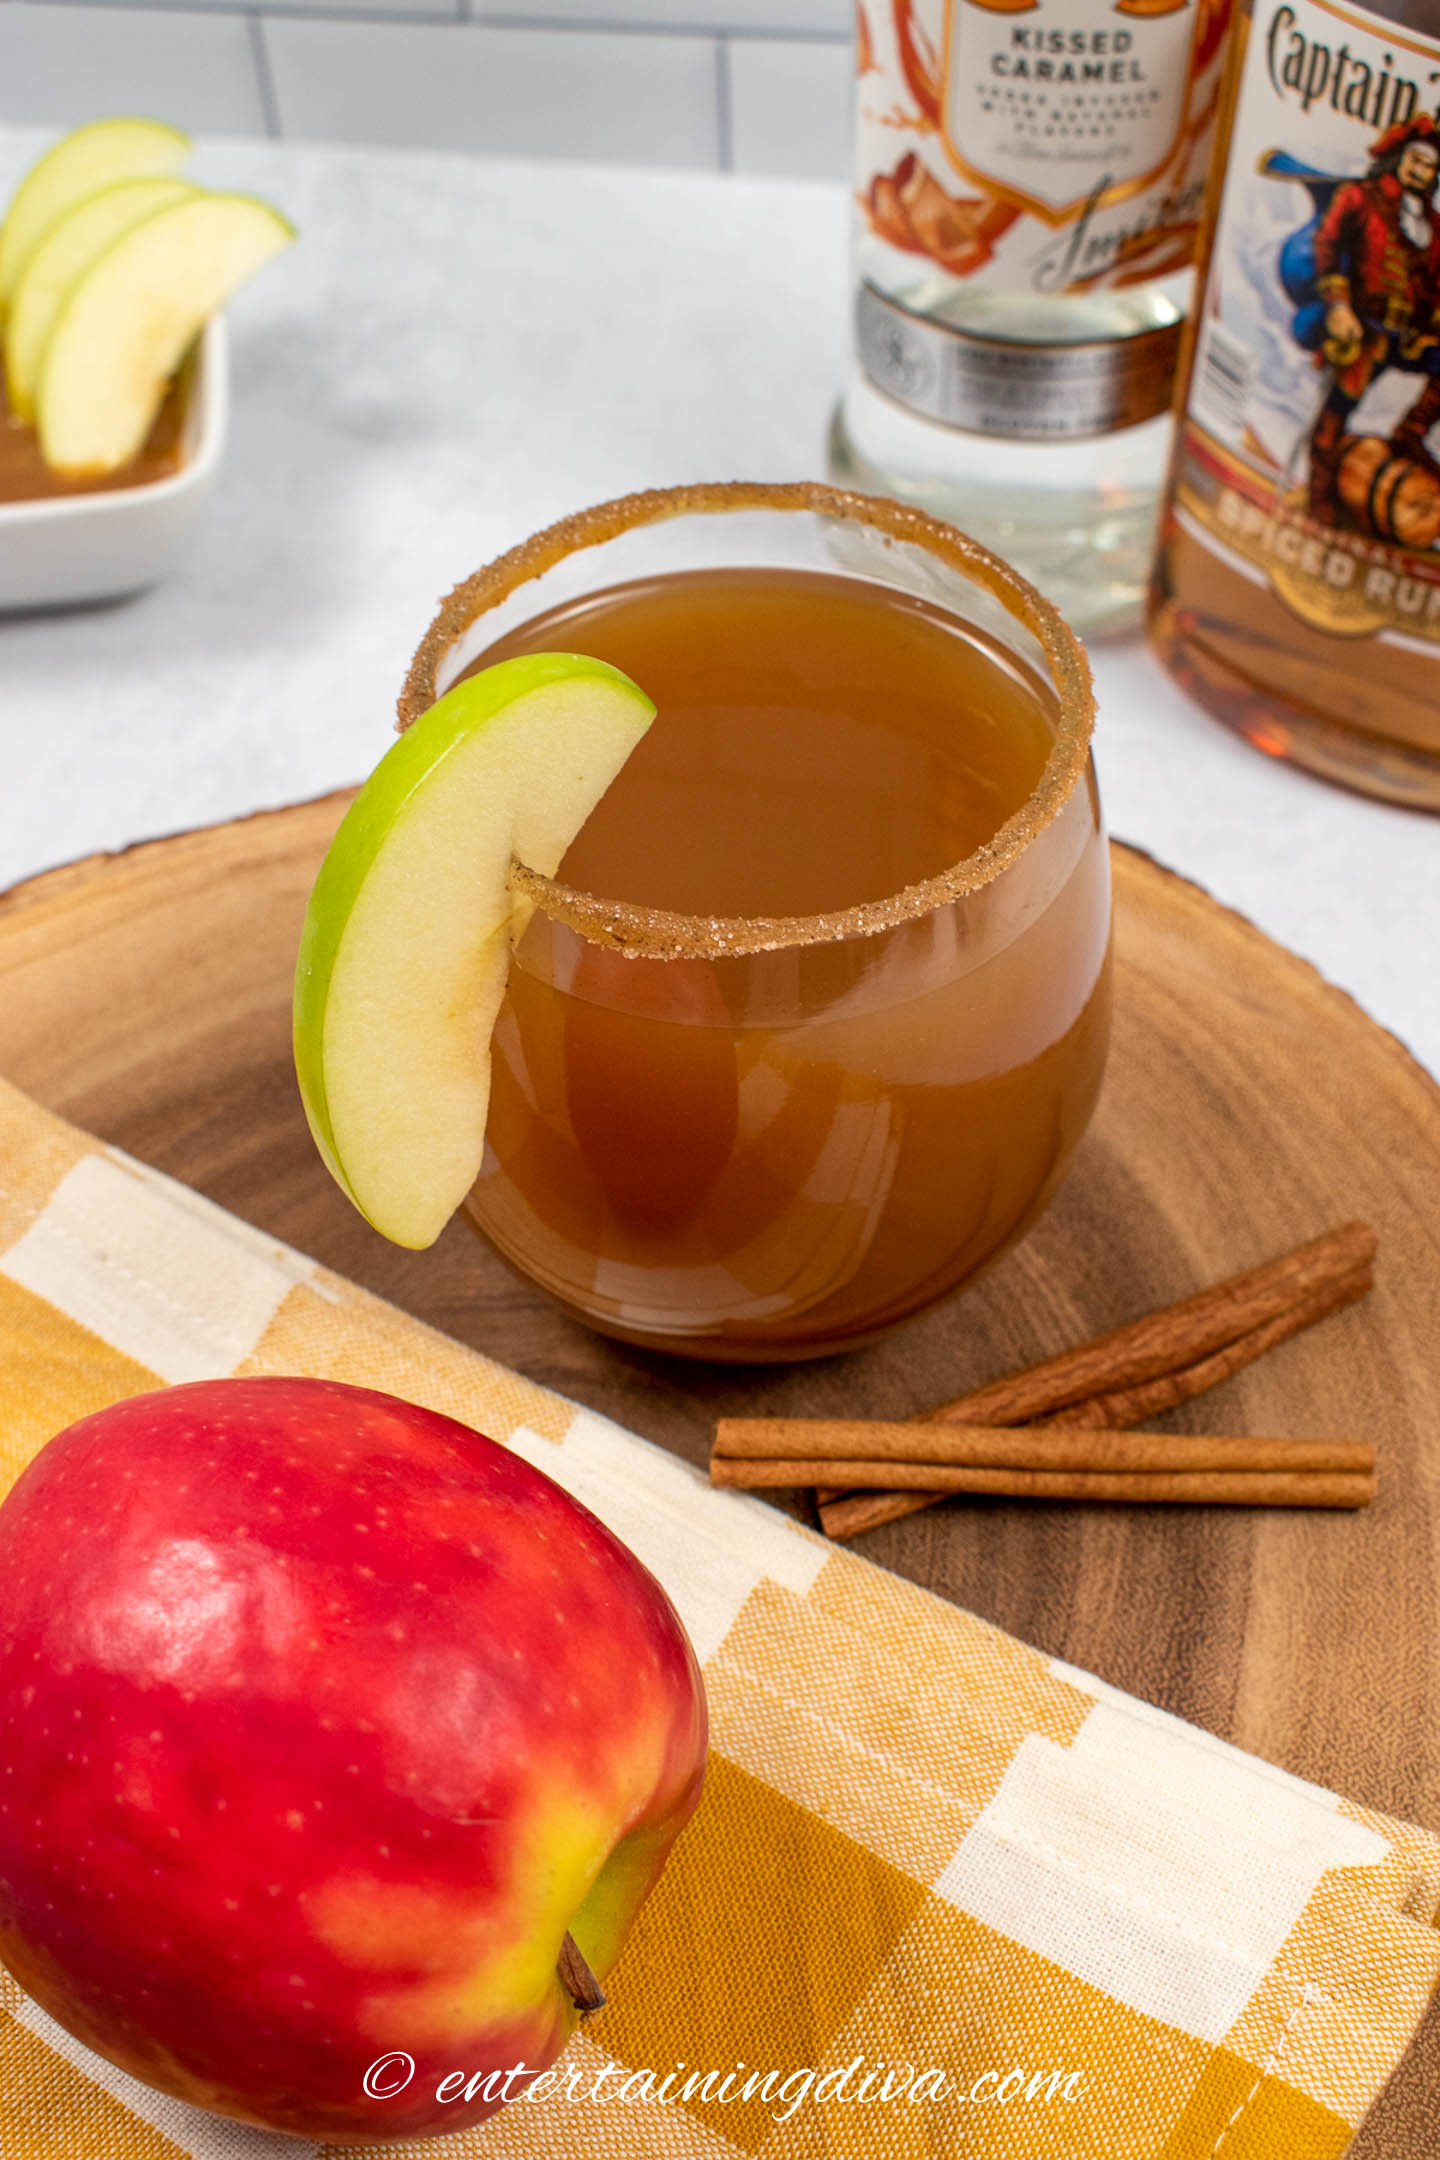 spiked caramel apple cider in a glass garnished with an apple slice